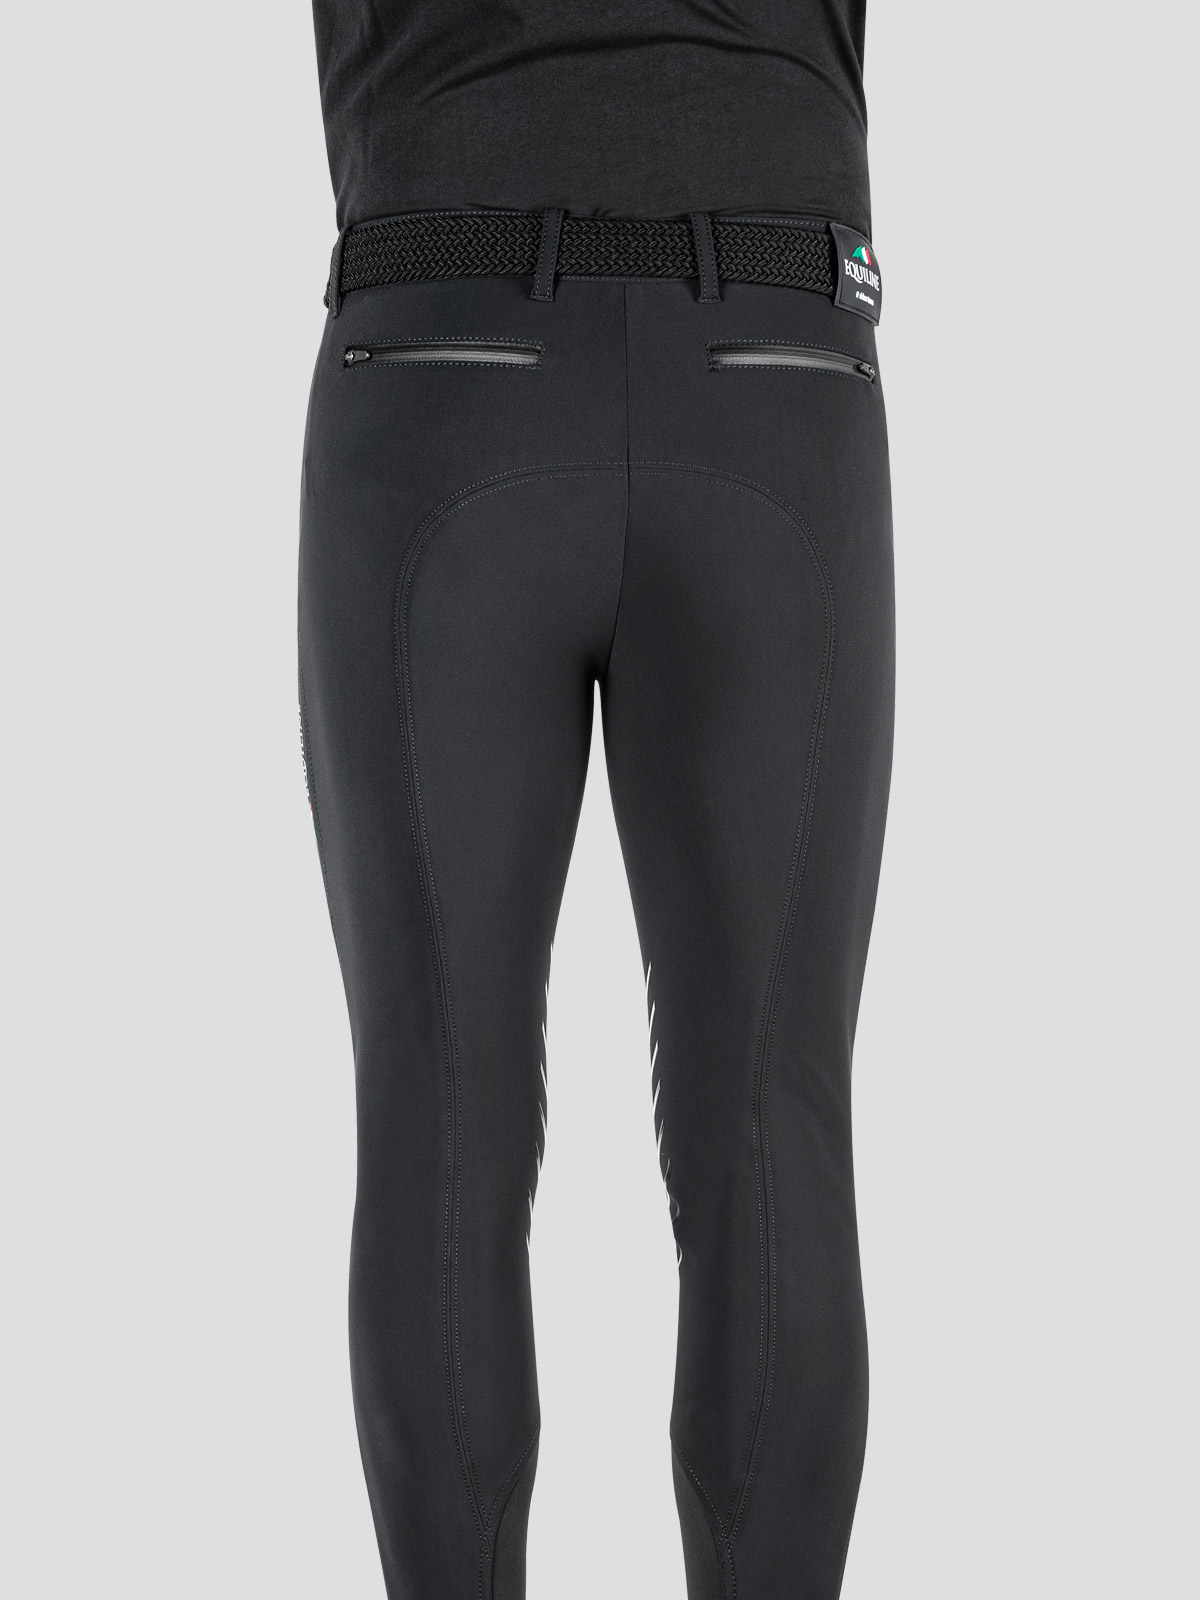 TEAM COLLECTION - MEN'S BREECHES WITH KNEE GRIP IN B-MOVE 3